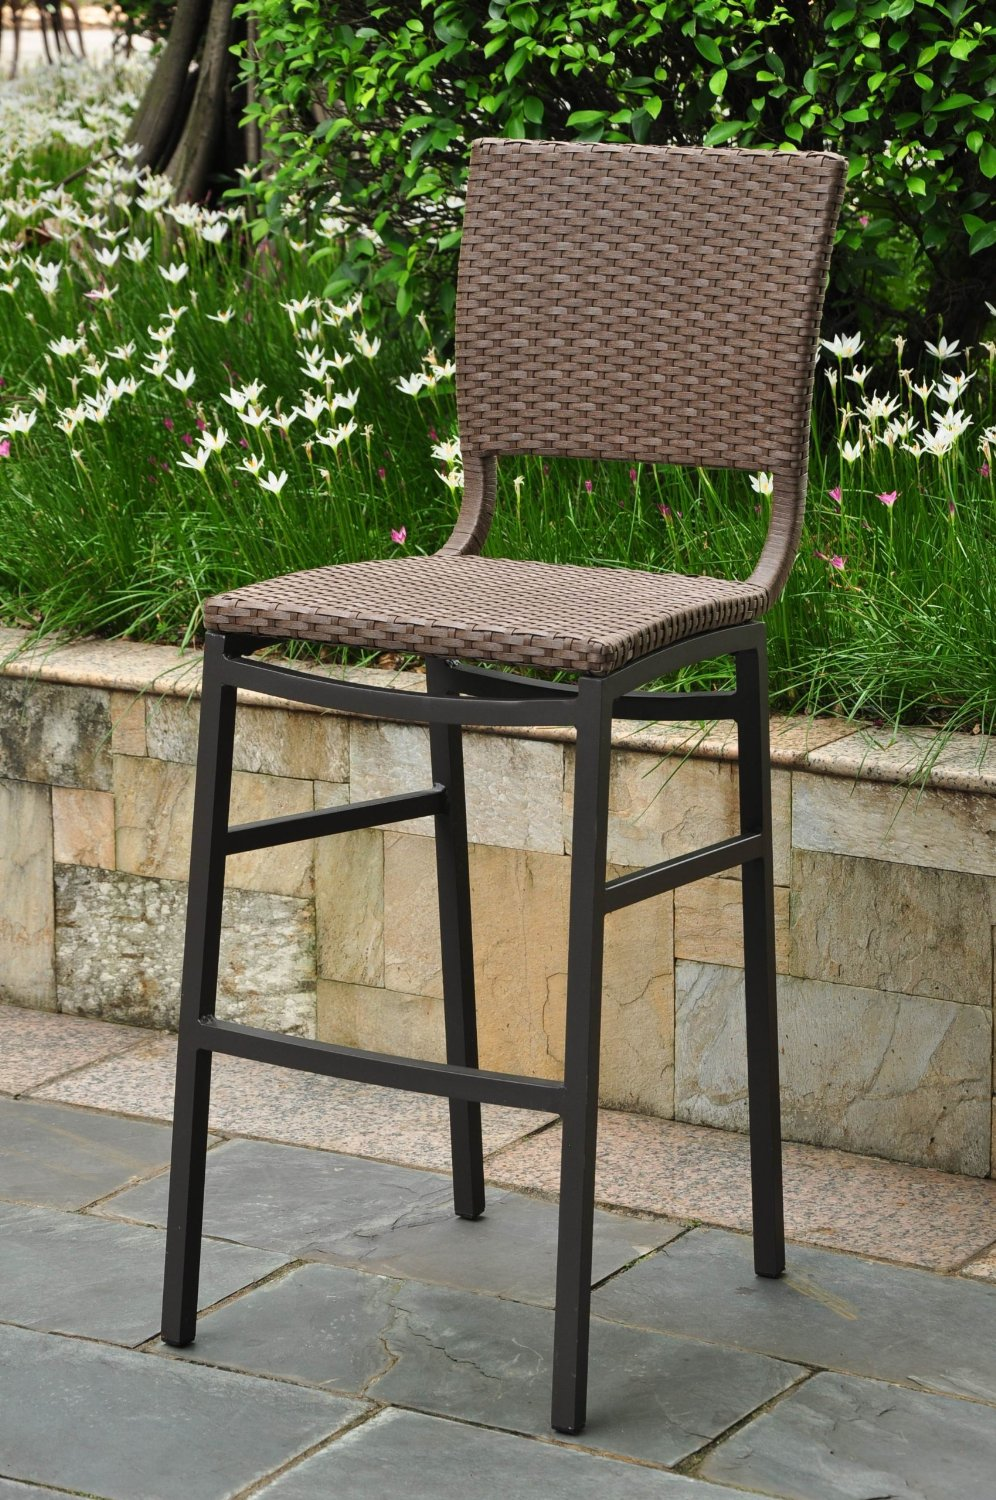 Attrayant Barcelona Resin Wicker Outdoor Bar Height Chairs ·  Barcelona_resin_wicker_outdoor_stools